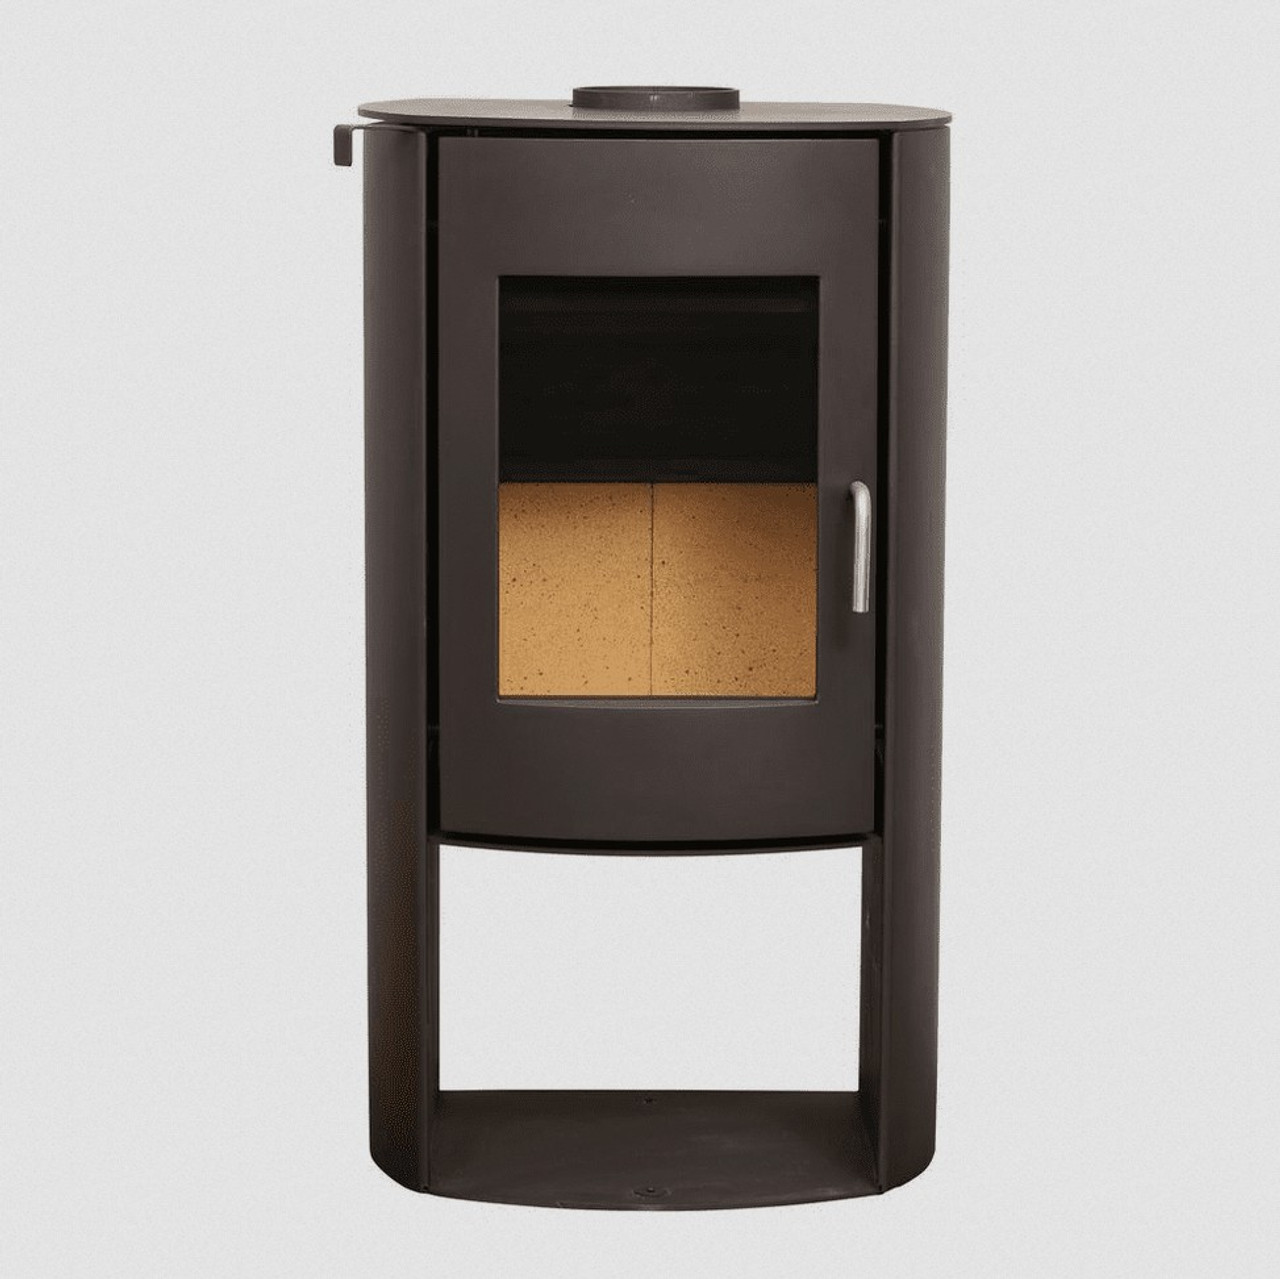 Nectre N65 Wood Stove by Dimplex